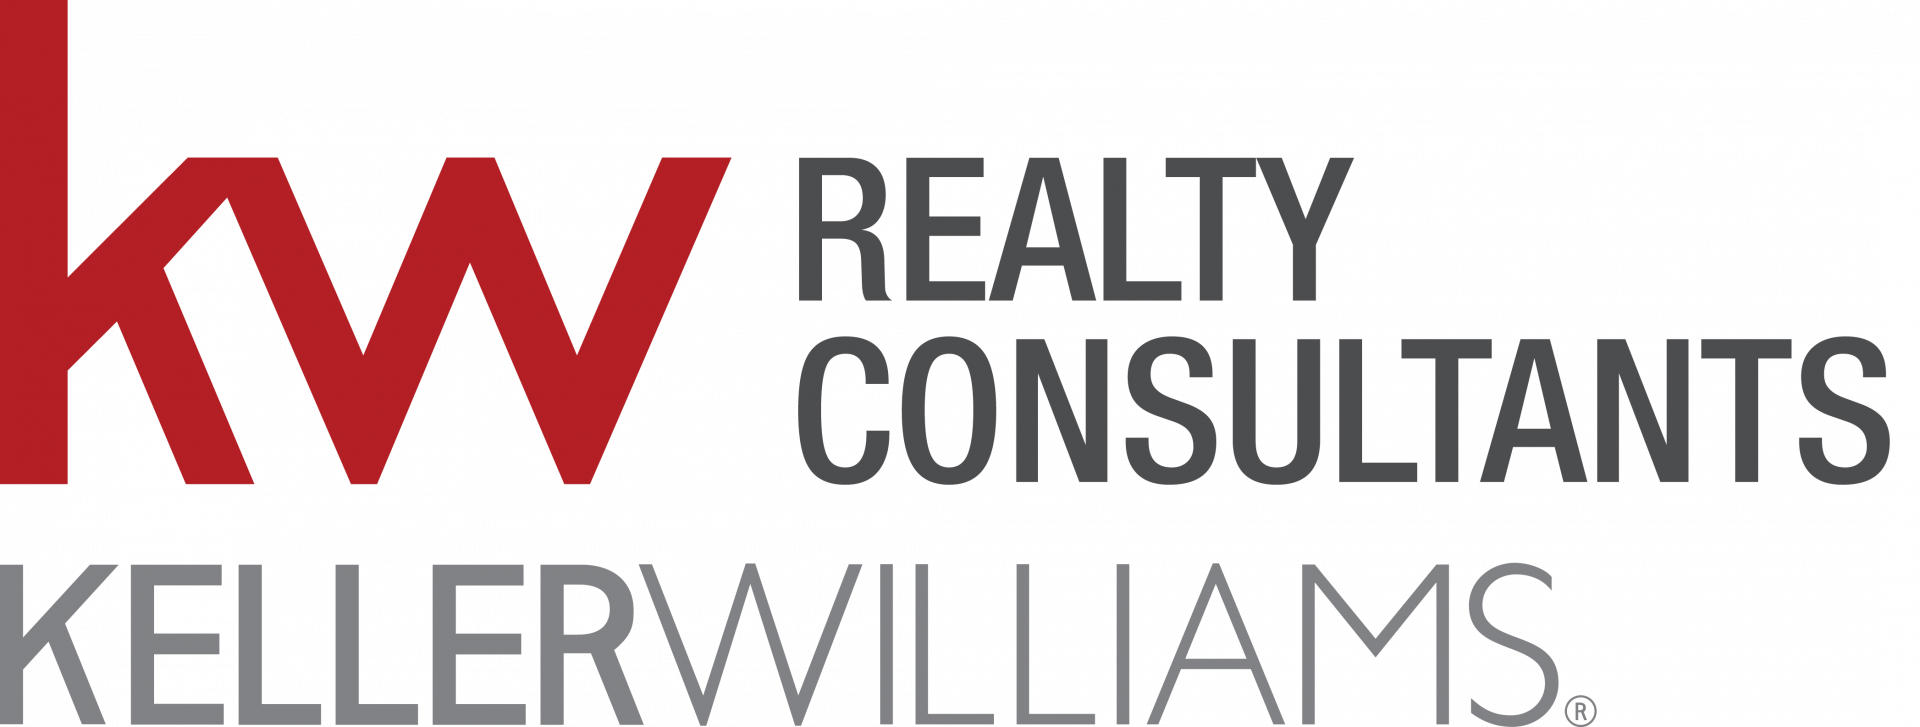 Liz Kennedy Homes / Keller Williams Realty Consultants logo